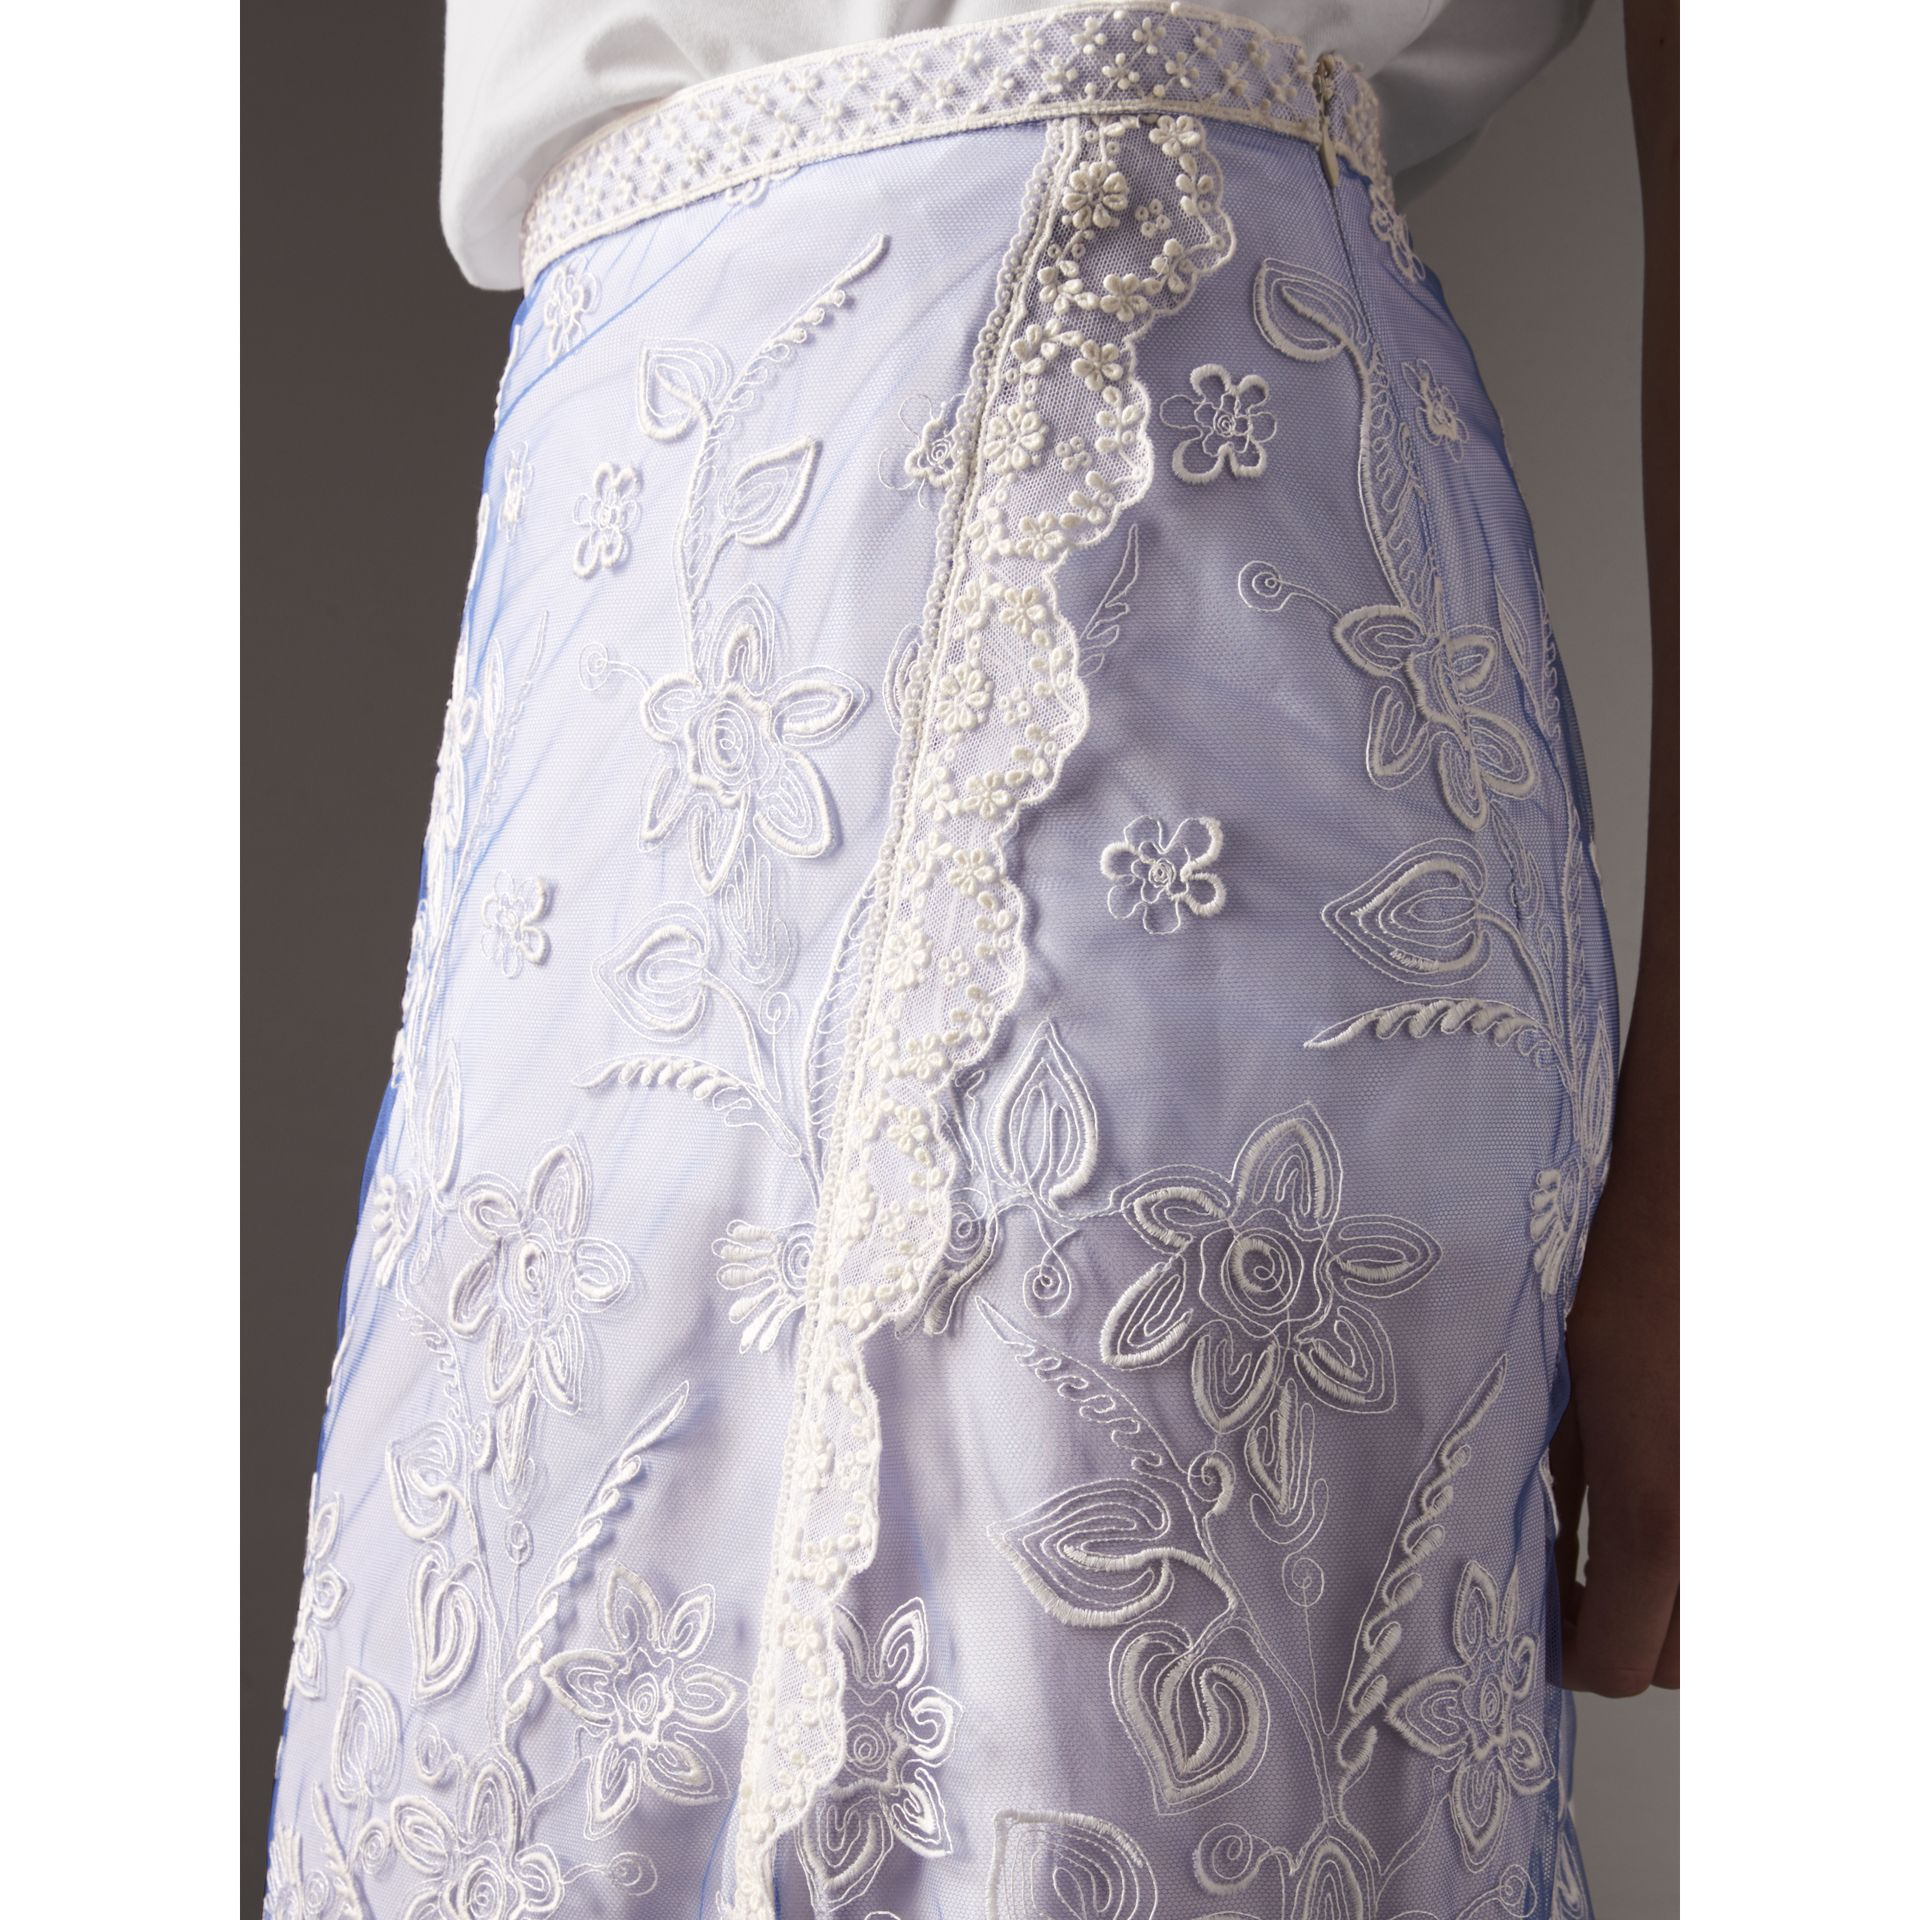 Floral-embroidered Tulle Skirt in Hydrangea Blue/white - Women | Burberry Singapore - gallery image 2